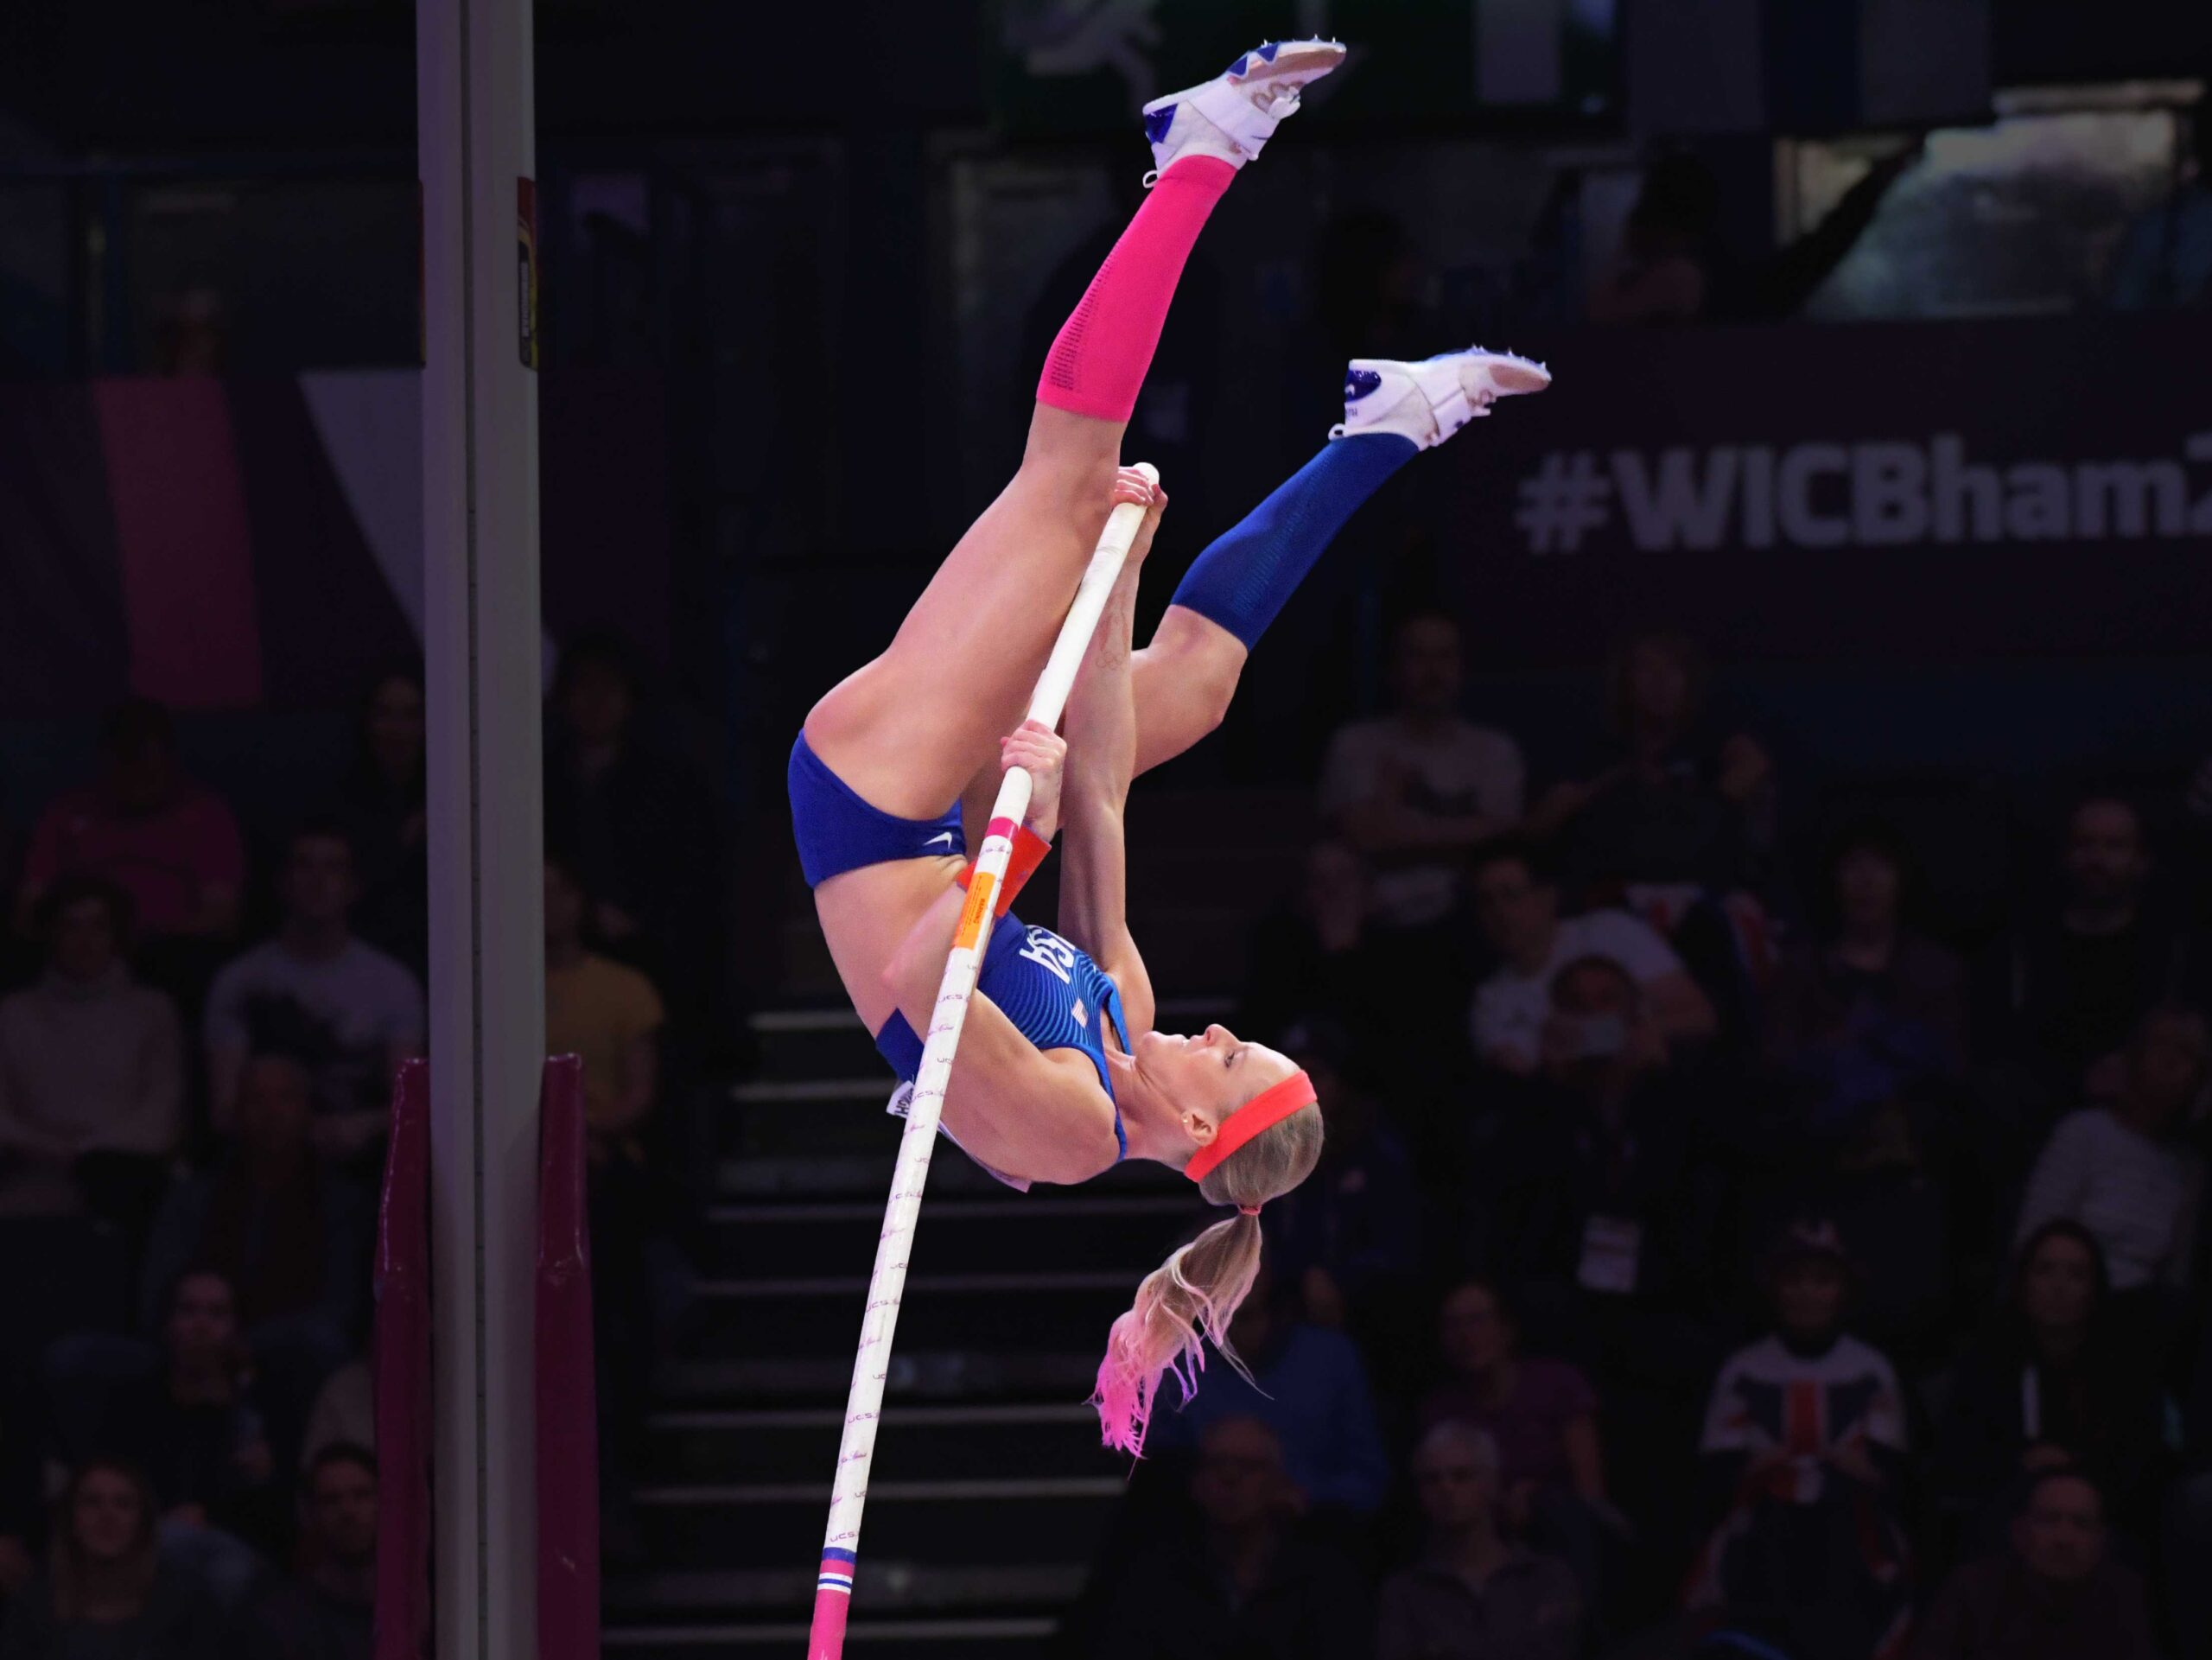 American Record Holder, Pole Vaulting with UCS Spirit Poles at the 2018 IAAF World Championships Indoors.